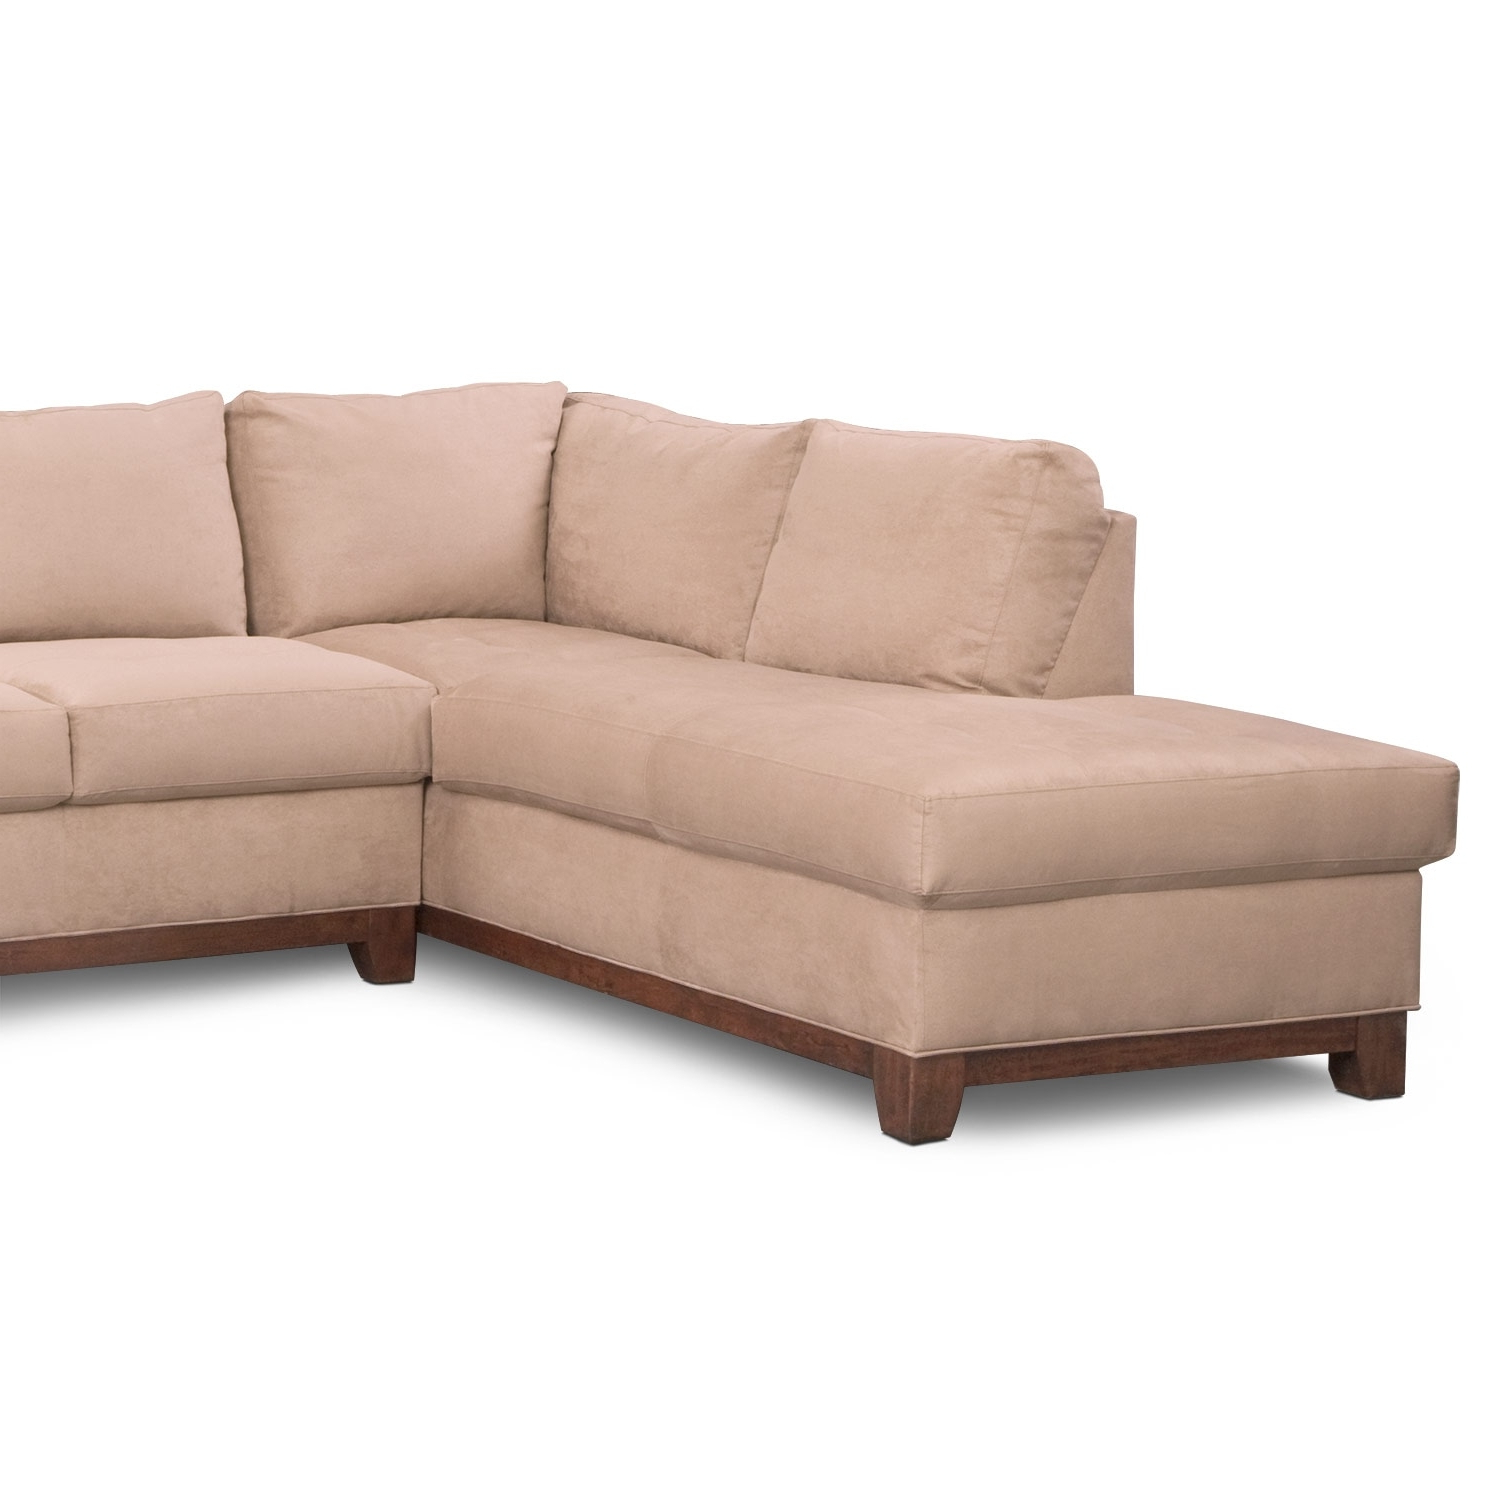 2018 Arrowmask 2 Piece Sectionals With Sleeper & Left Facing Chaise For Soho 2 Piece Sectional With Chaise (Gallery 12 of 20)